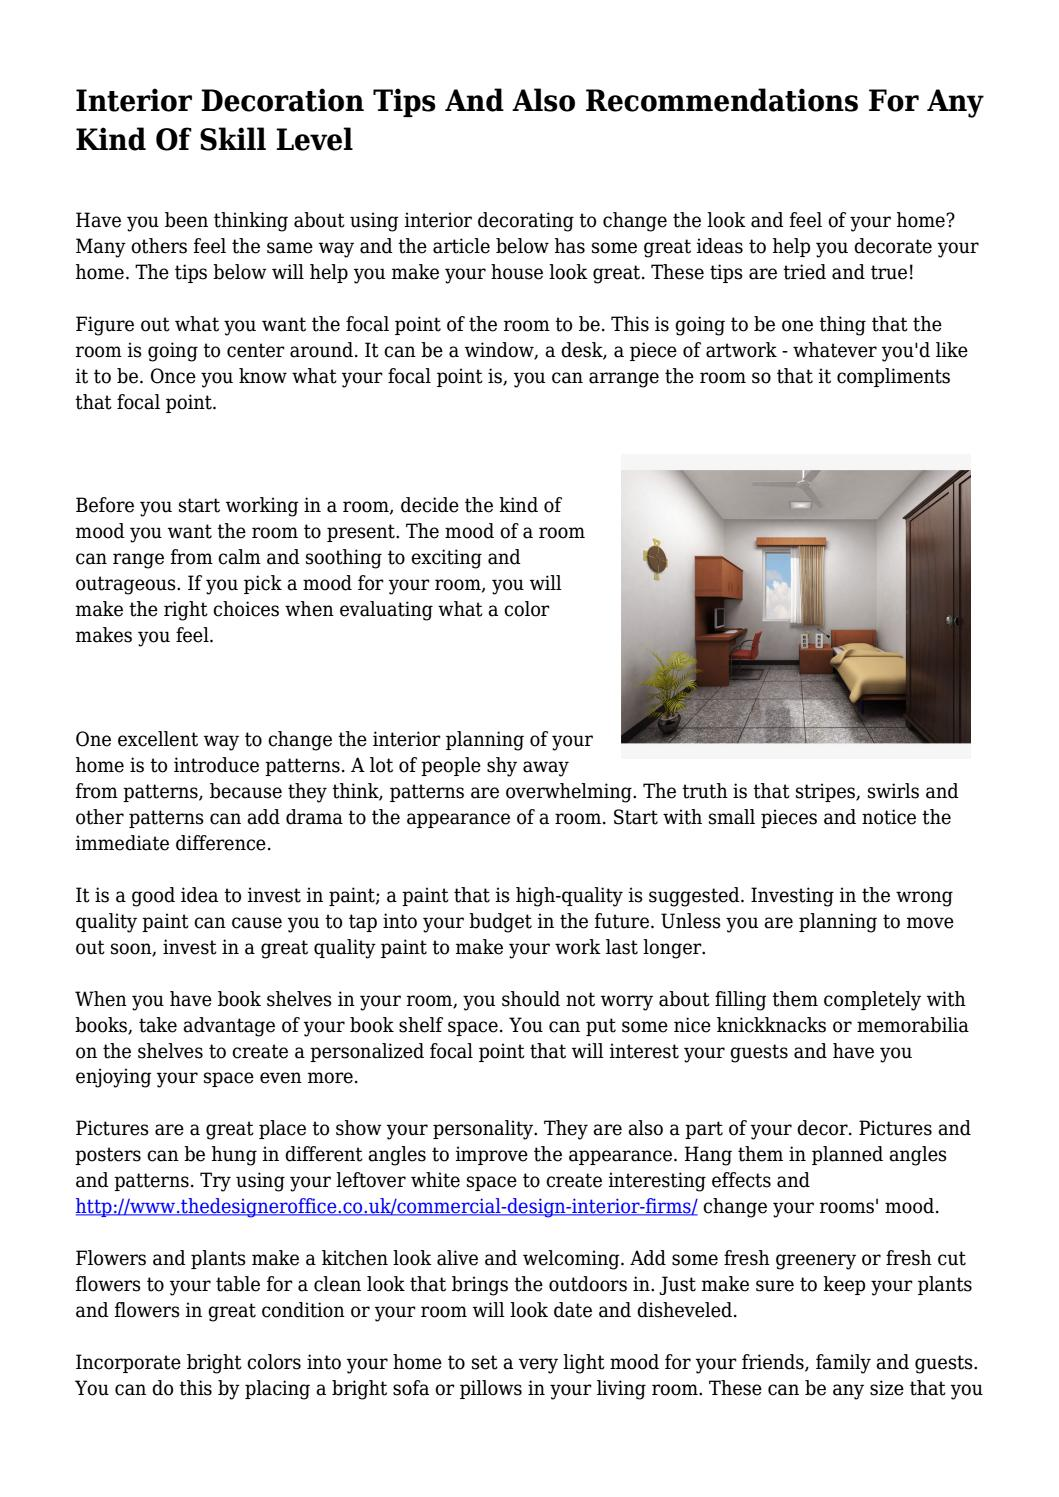 Interior Decoration Tips And Also Recommendations For Any Kind Of Skill  Level... by caulkpreyor - issuu